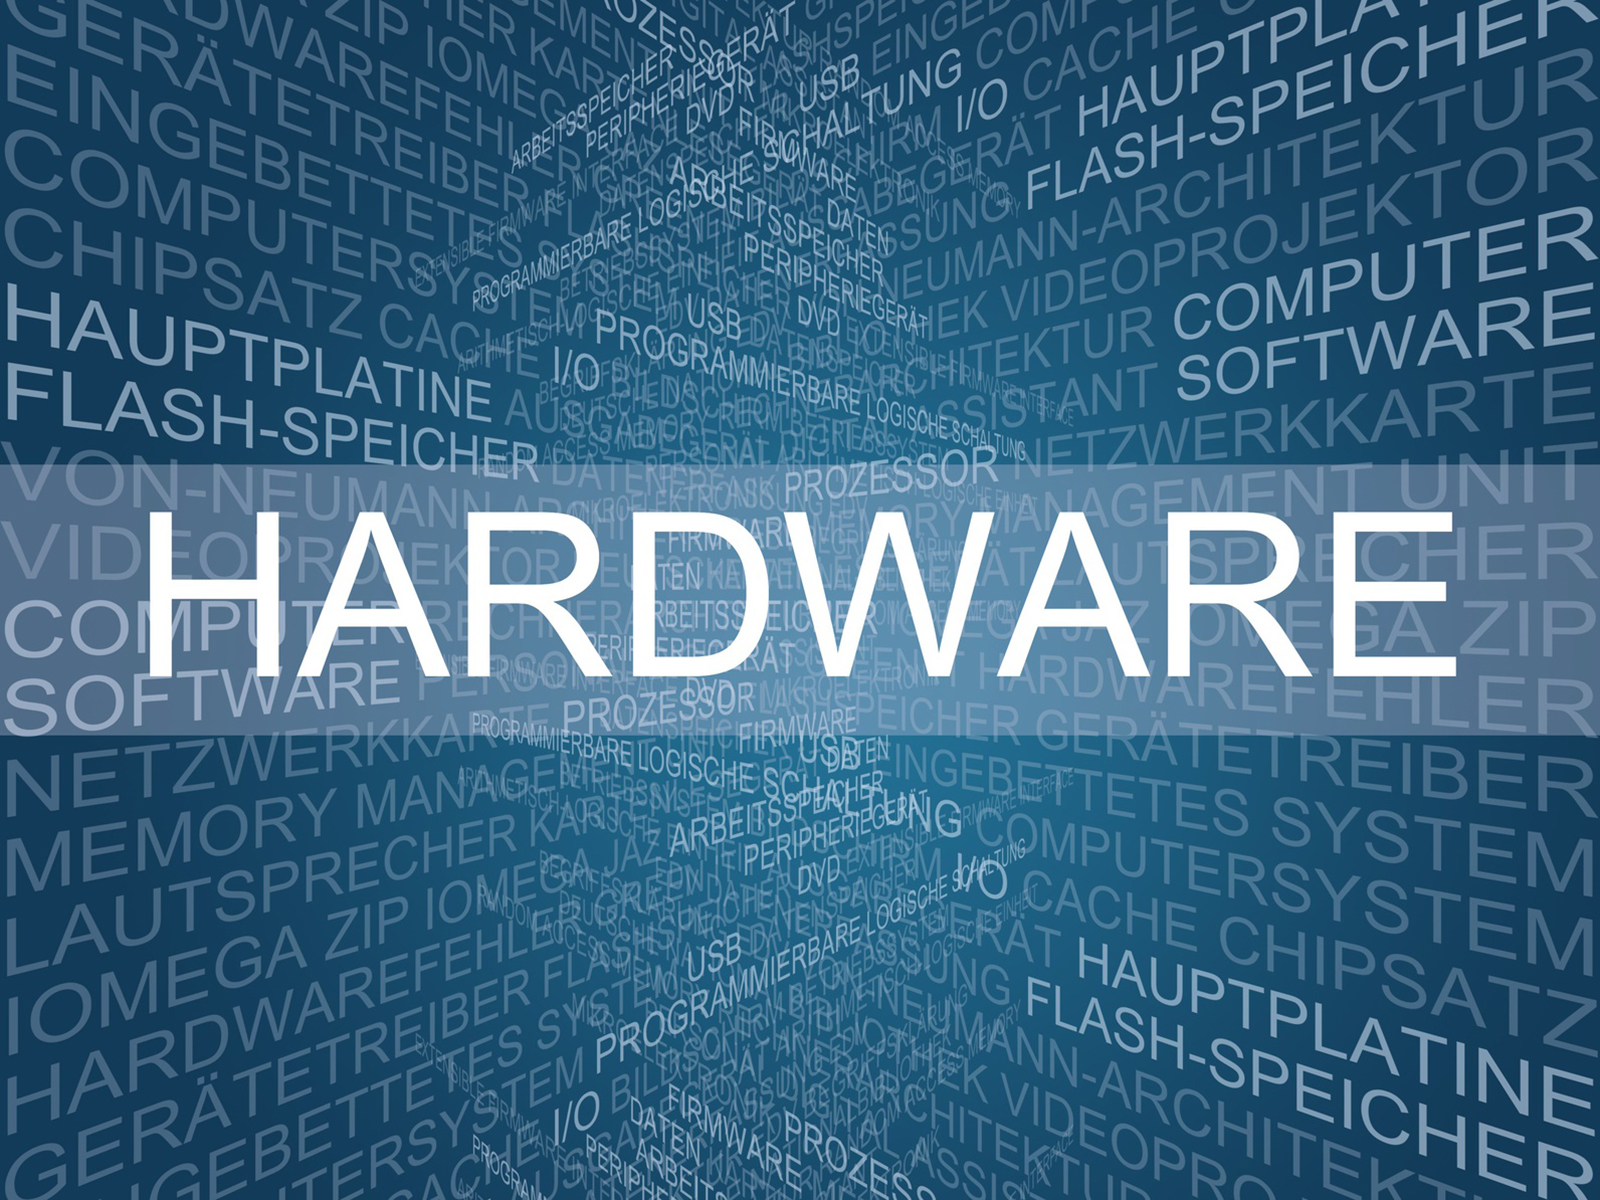 Hardware Development